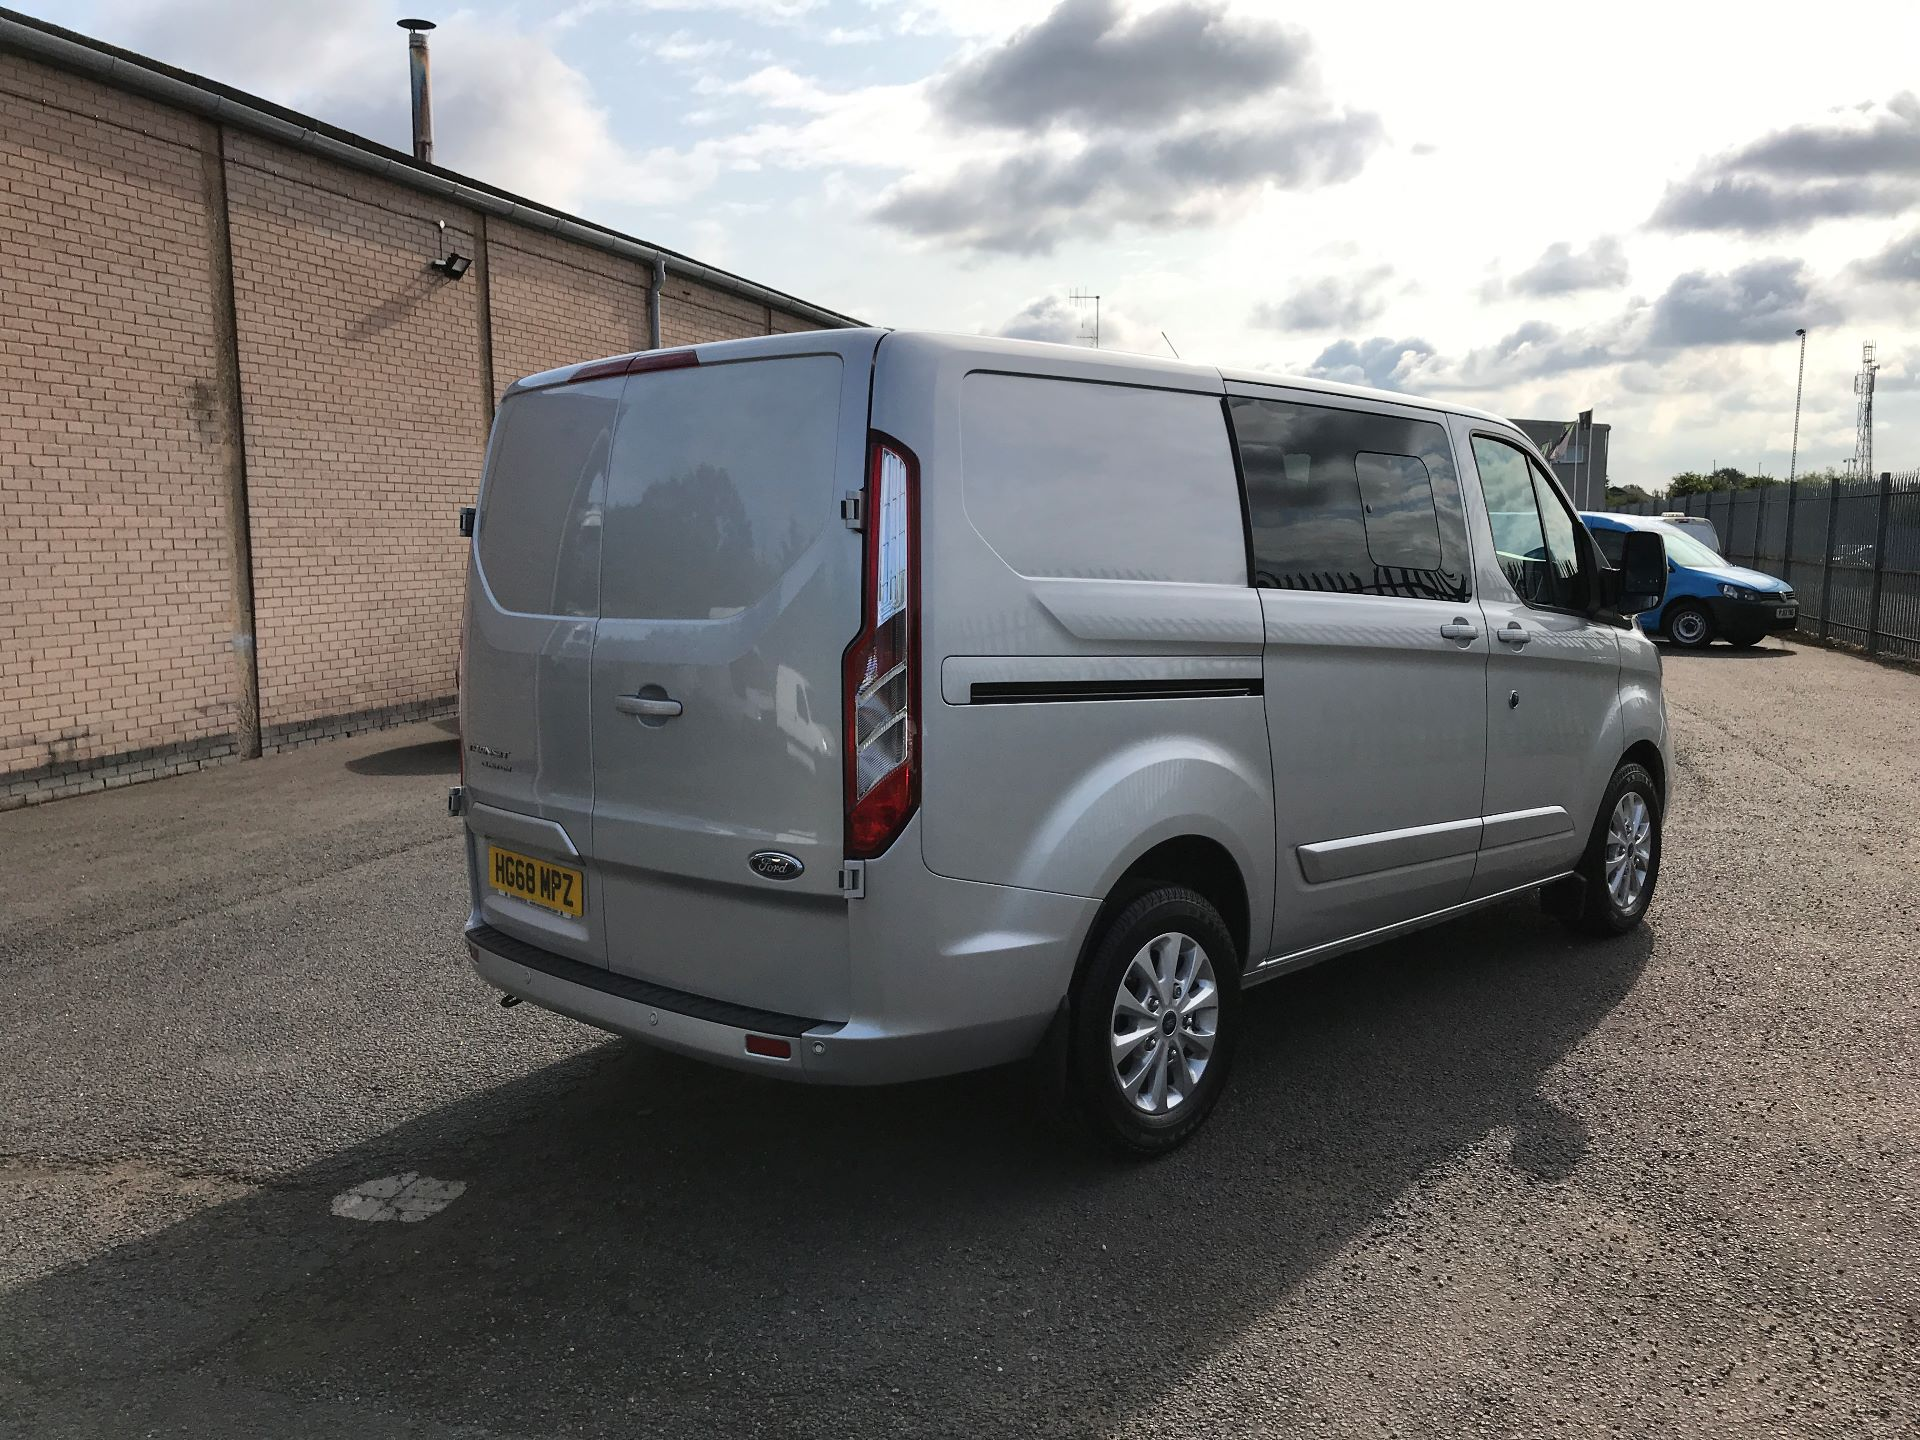 2018 Ford Transit Custom 320 L1 2.0TDCI 130PS LOW ROOF DOUBLE CAB LIMITED EURO 6 (HG68MPZ) Image 8